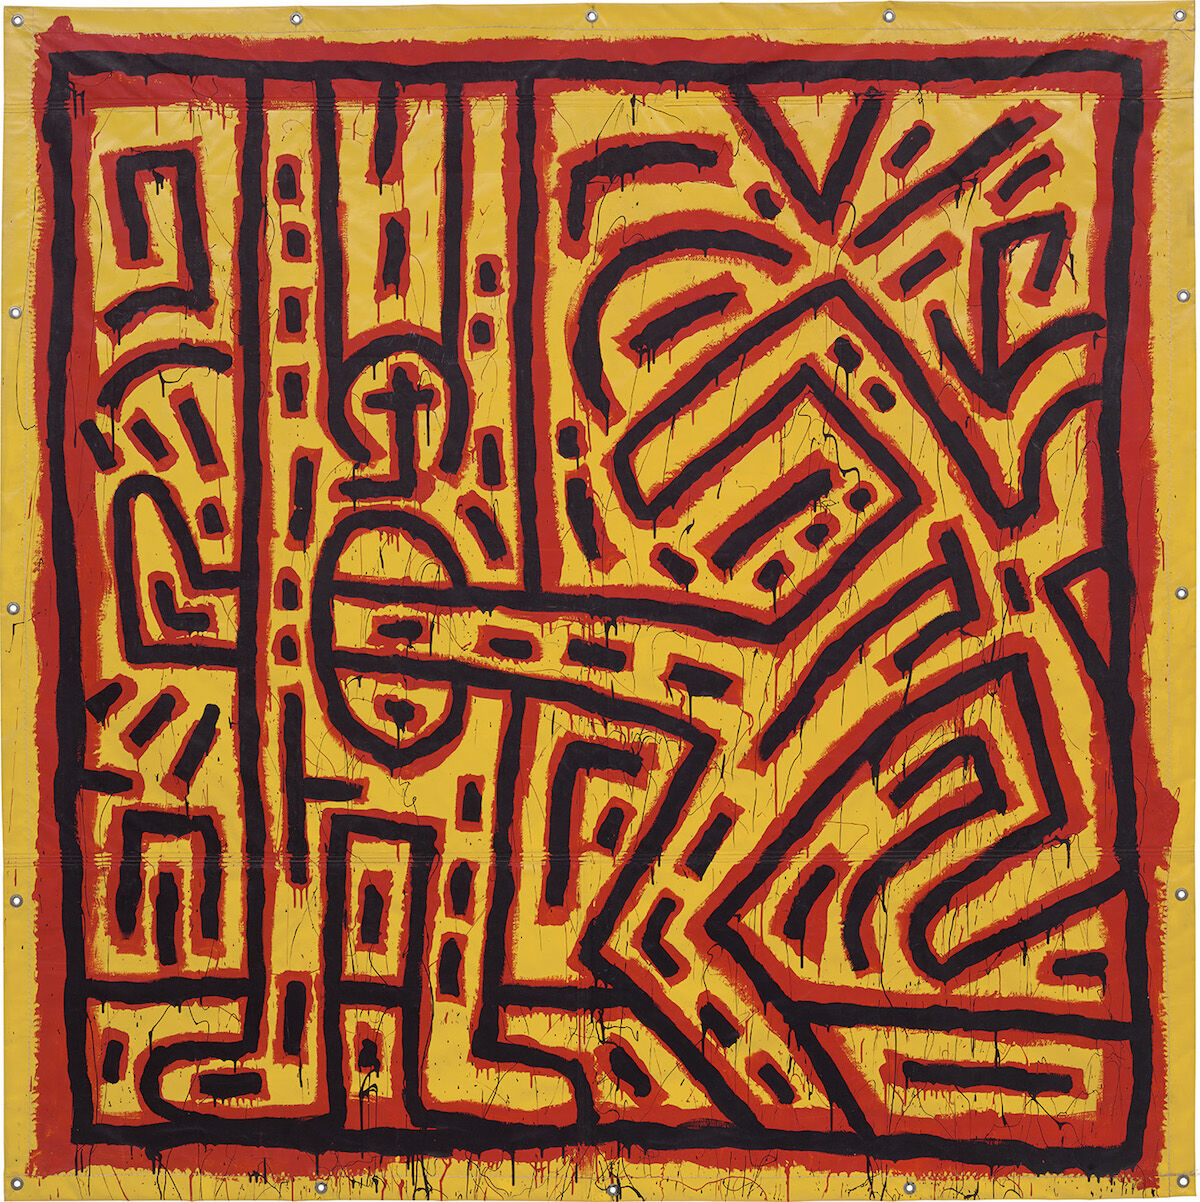 Keith Haring, Untitled, 1981. Sold for £3.2 million ($4.1 million). Courtesy Phillips.